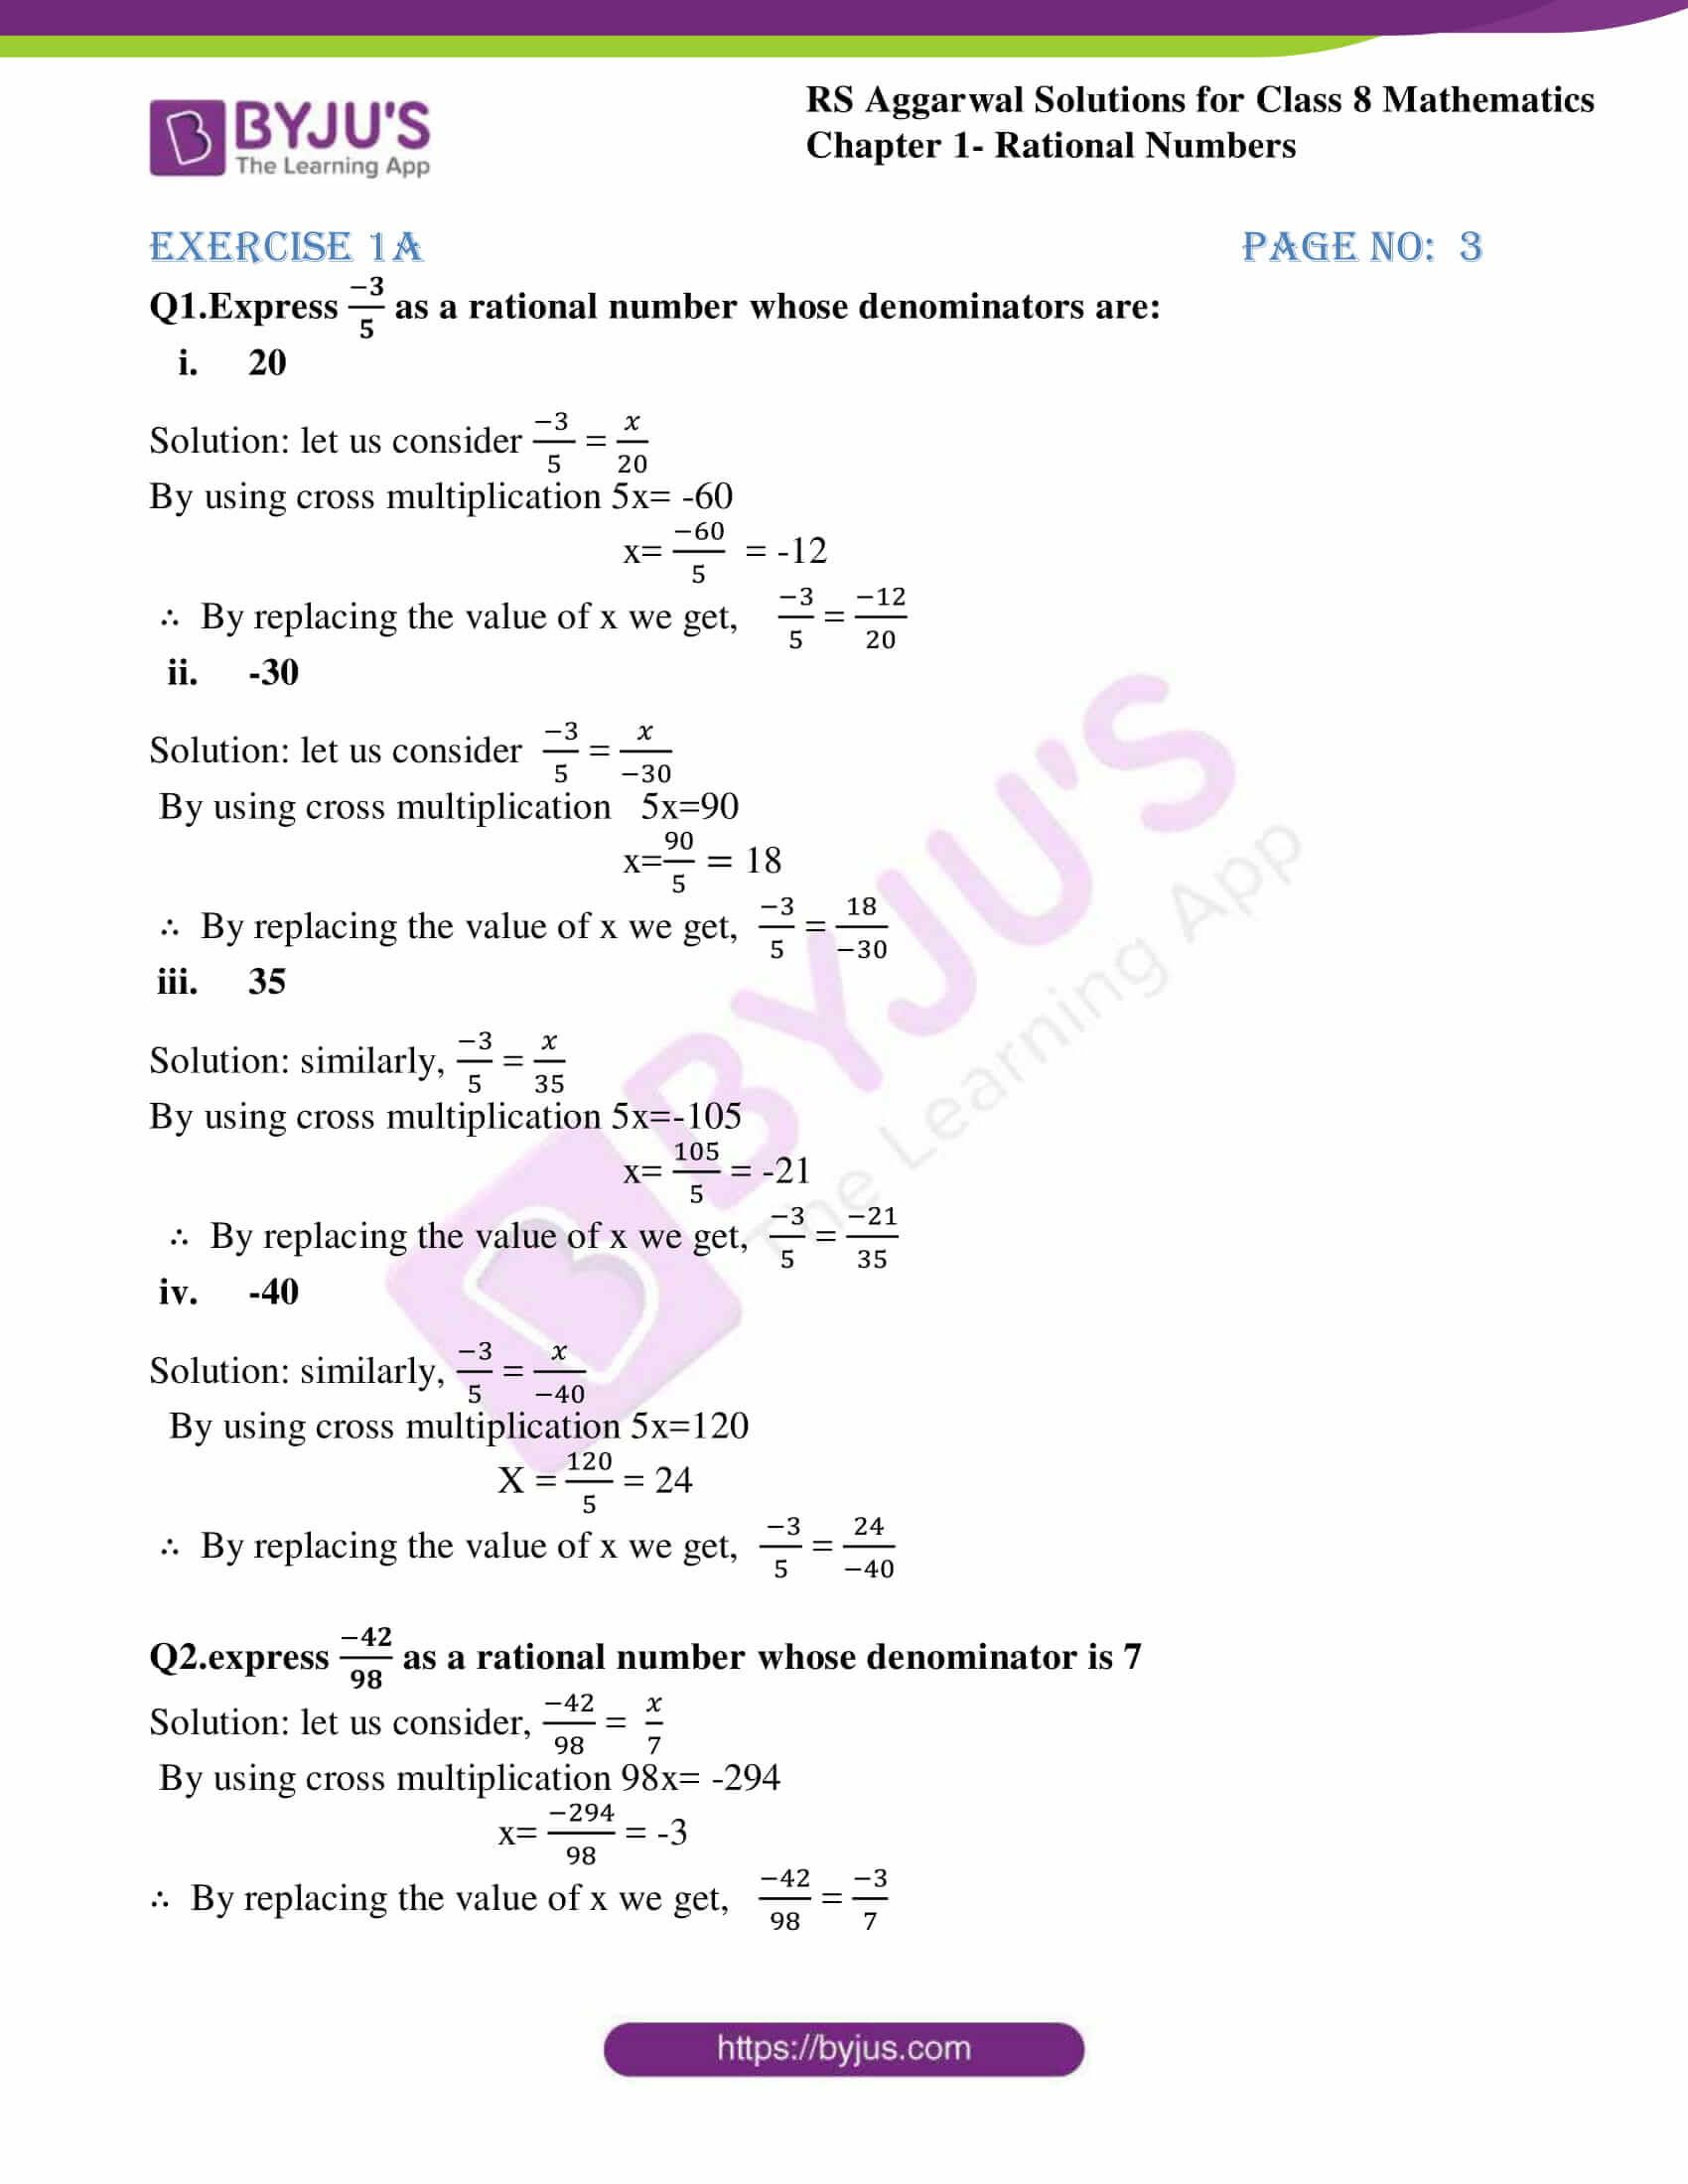 Fresh Ideas - rs aggarwal solutions class 8 maths chapter 1a in 2020